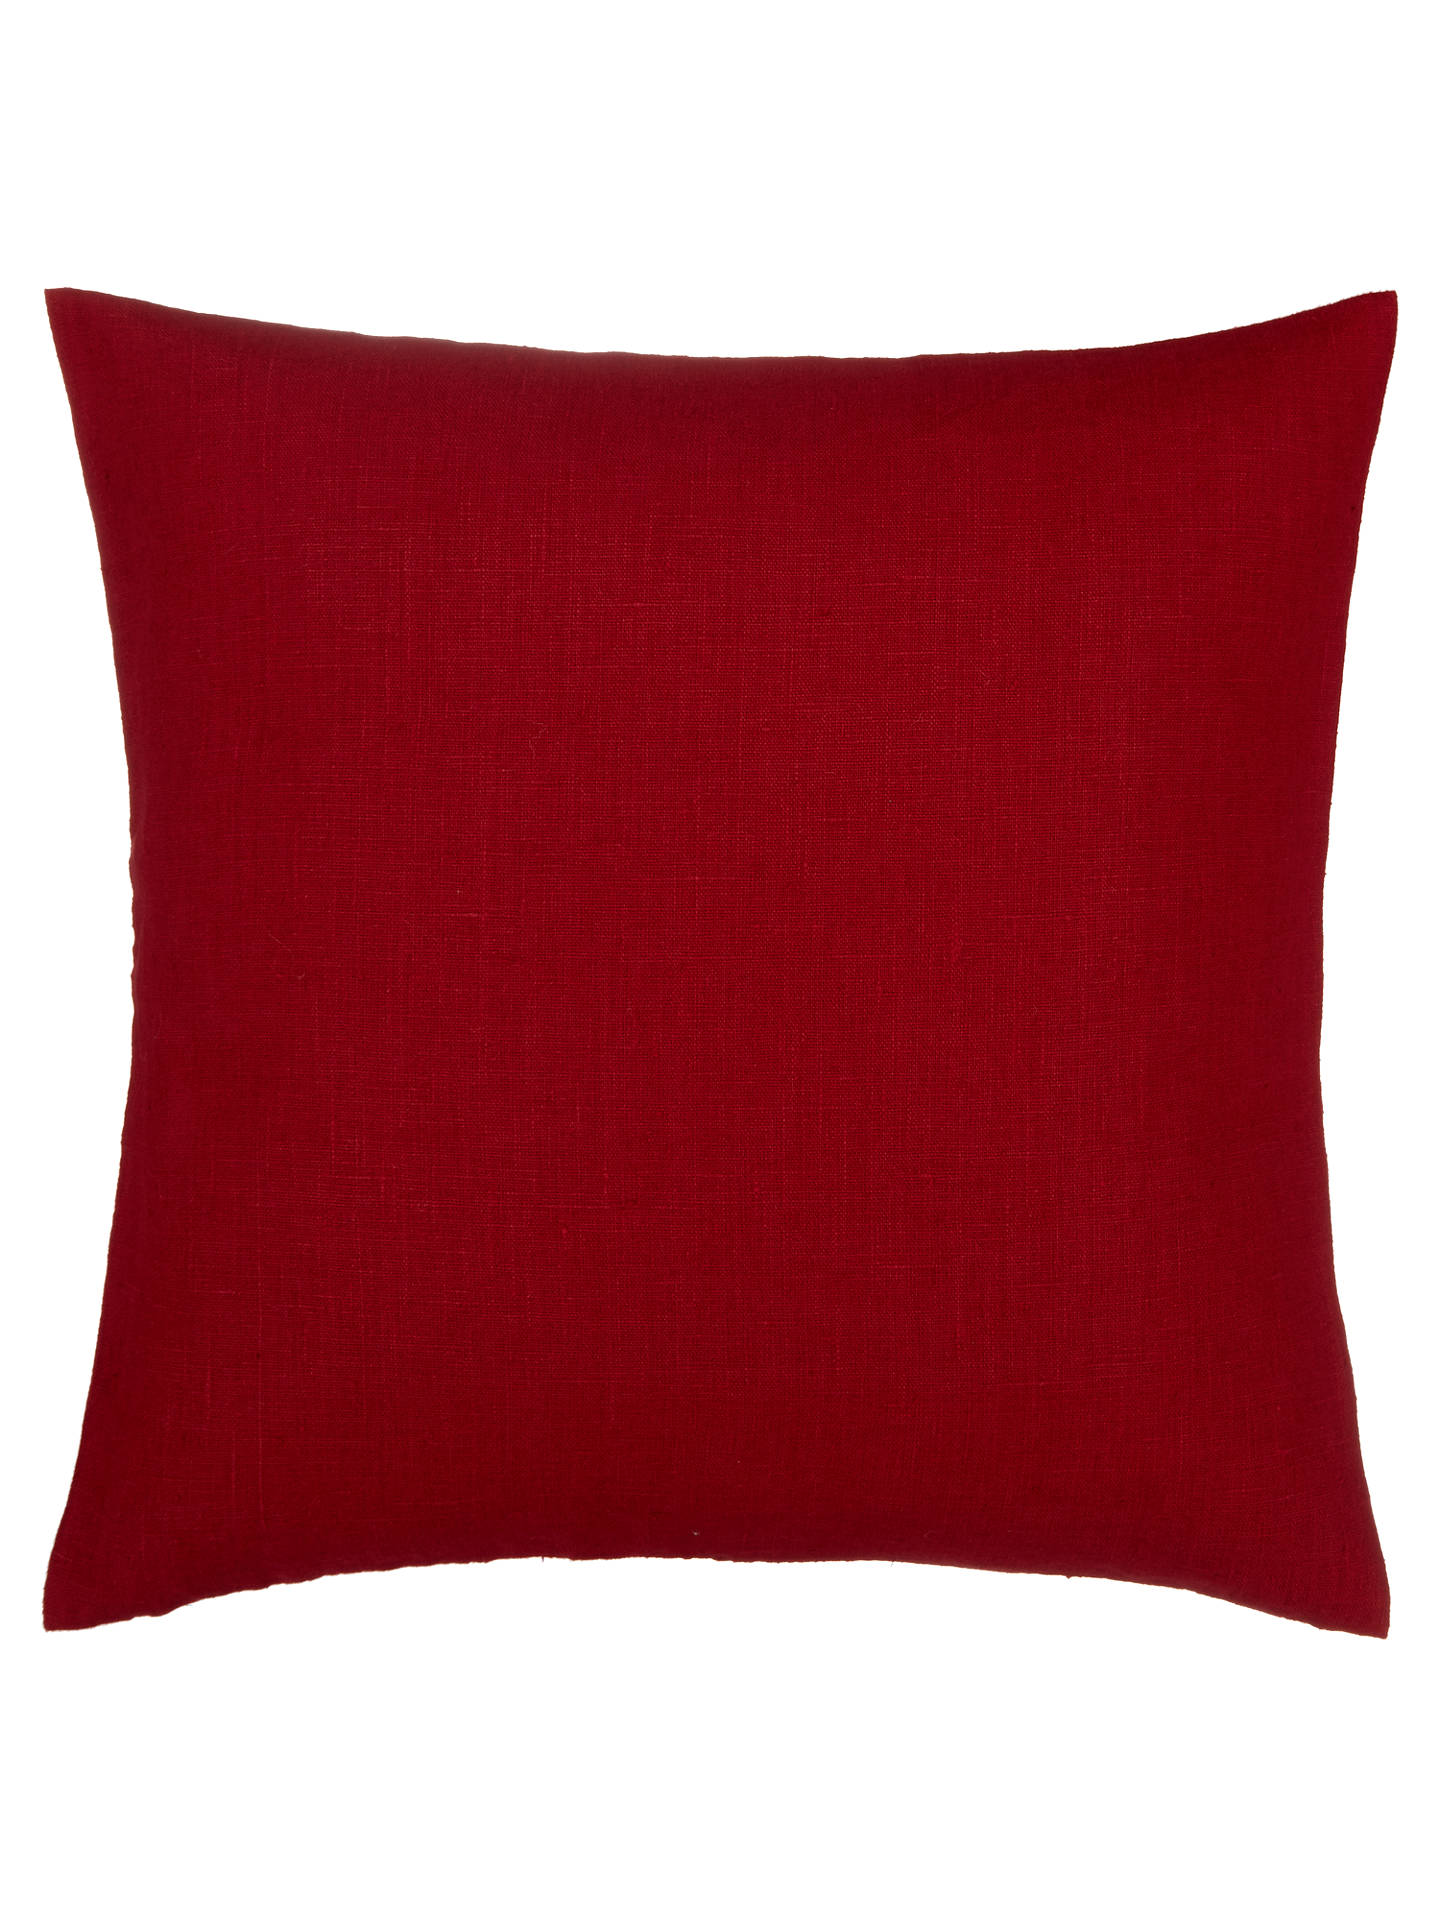 BuyJohn Lewis & Partners Linen Cushion, Crimson Online at johnlewis.com